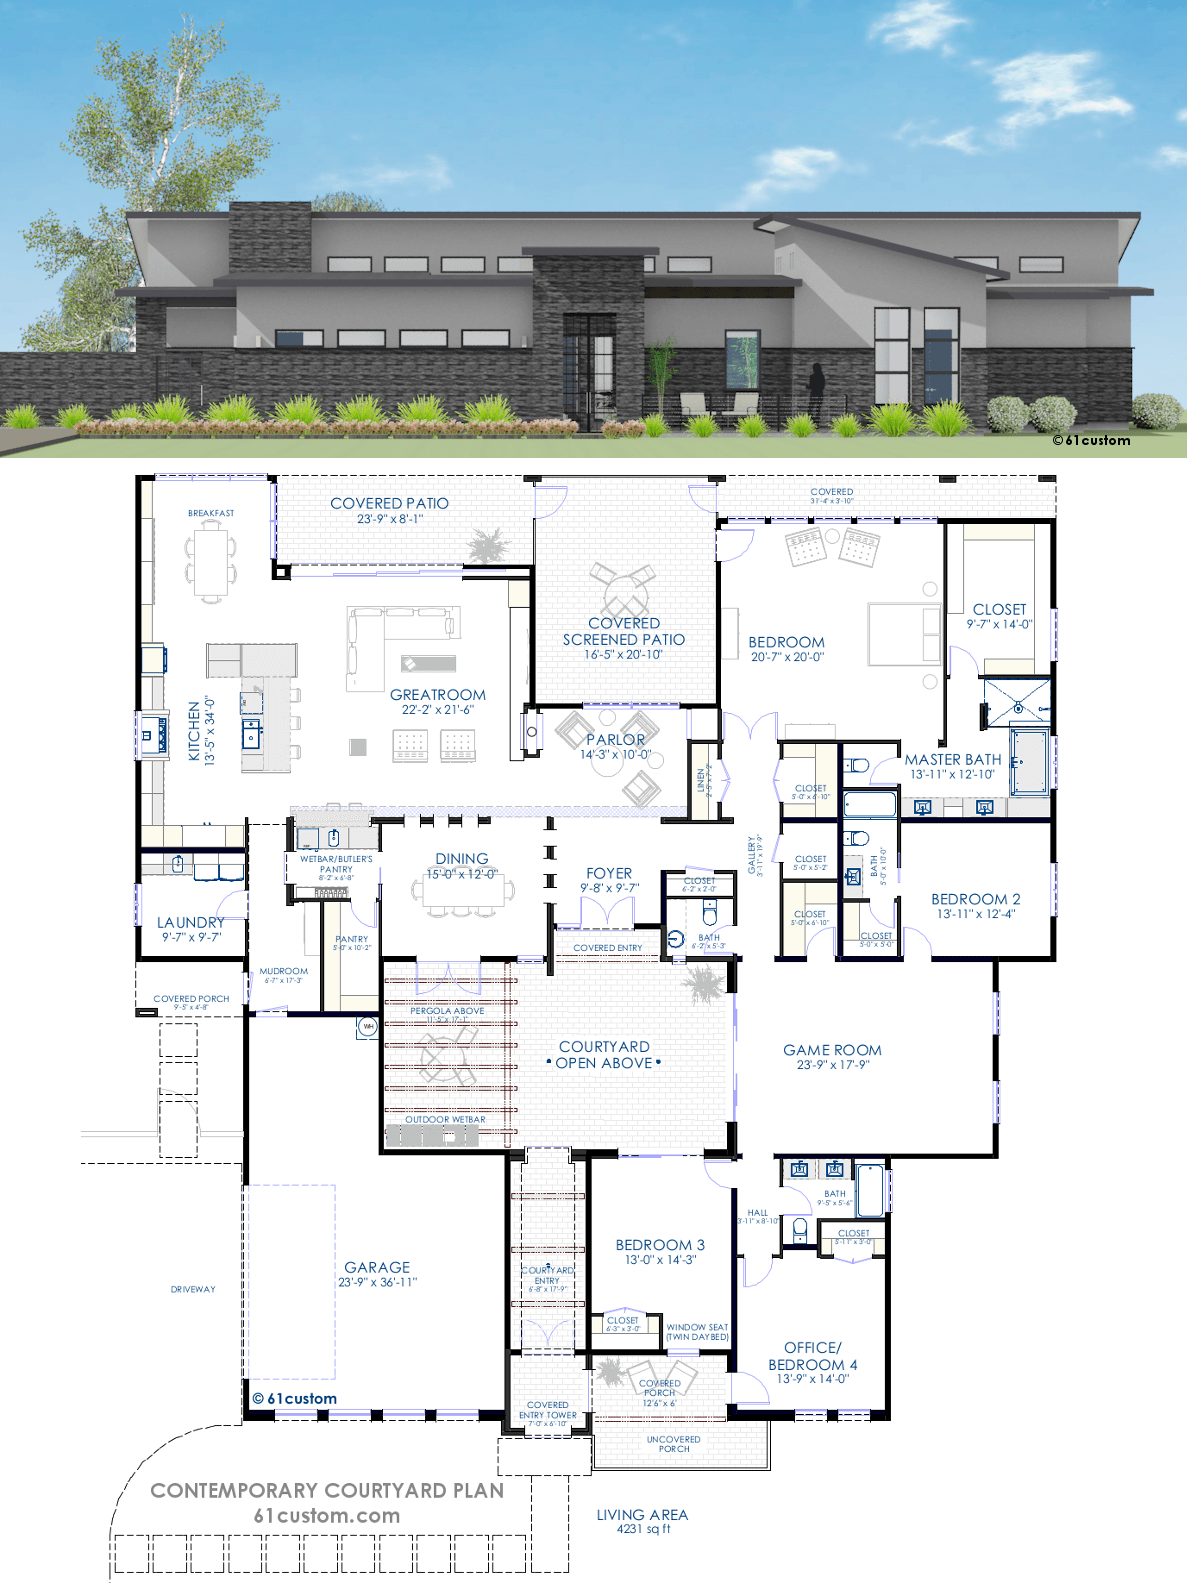 design house plans free contemporary courtyard house plan 61custom modern 17246